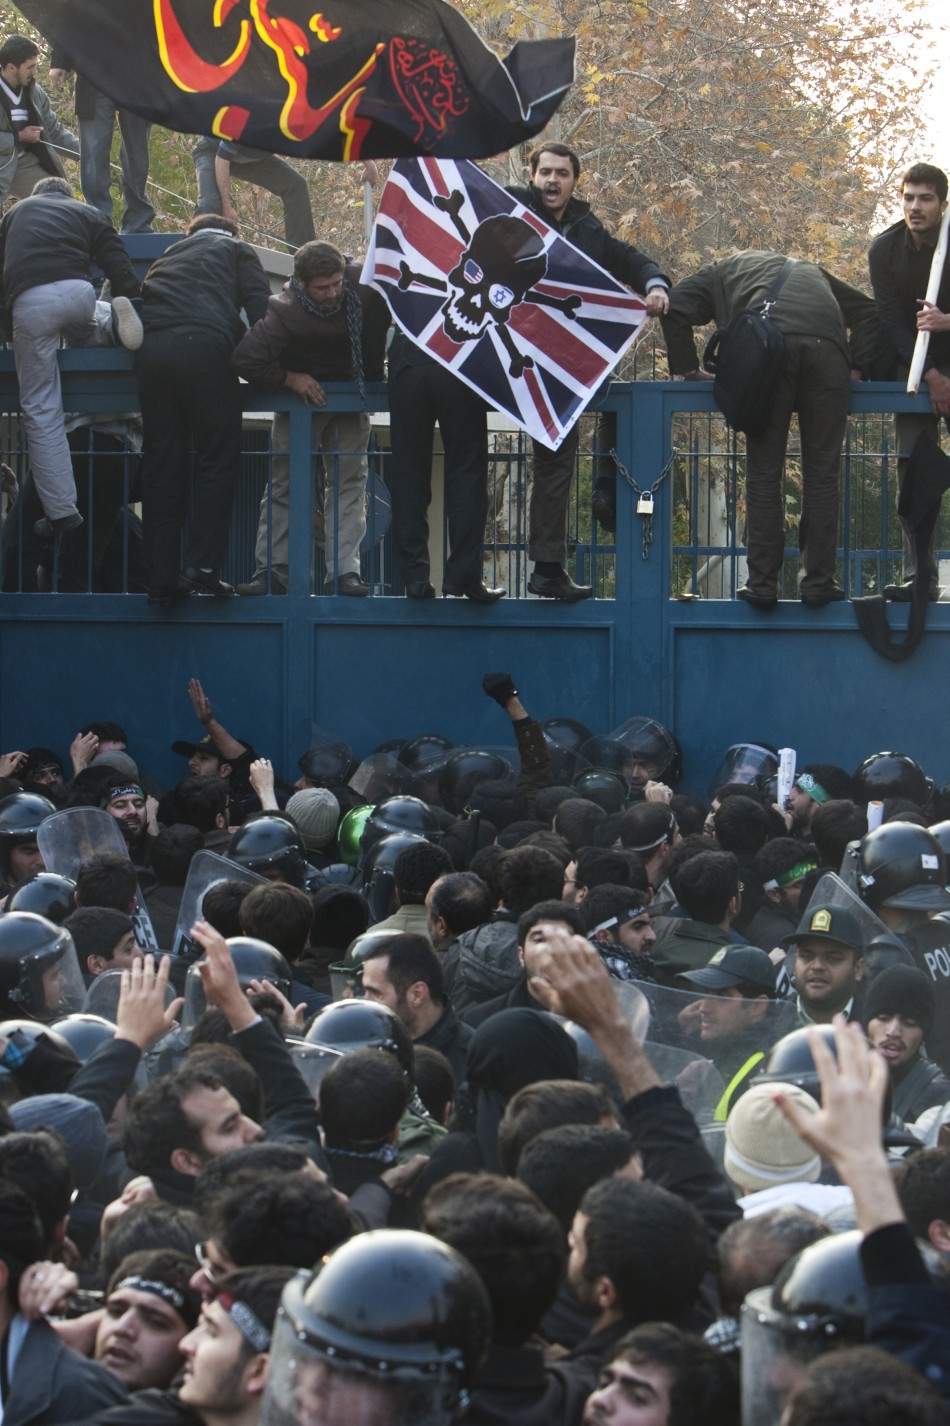 Iranian protesters try to enter the British embassy in Tehran